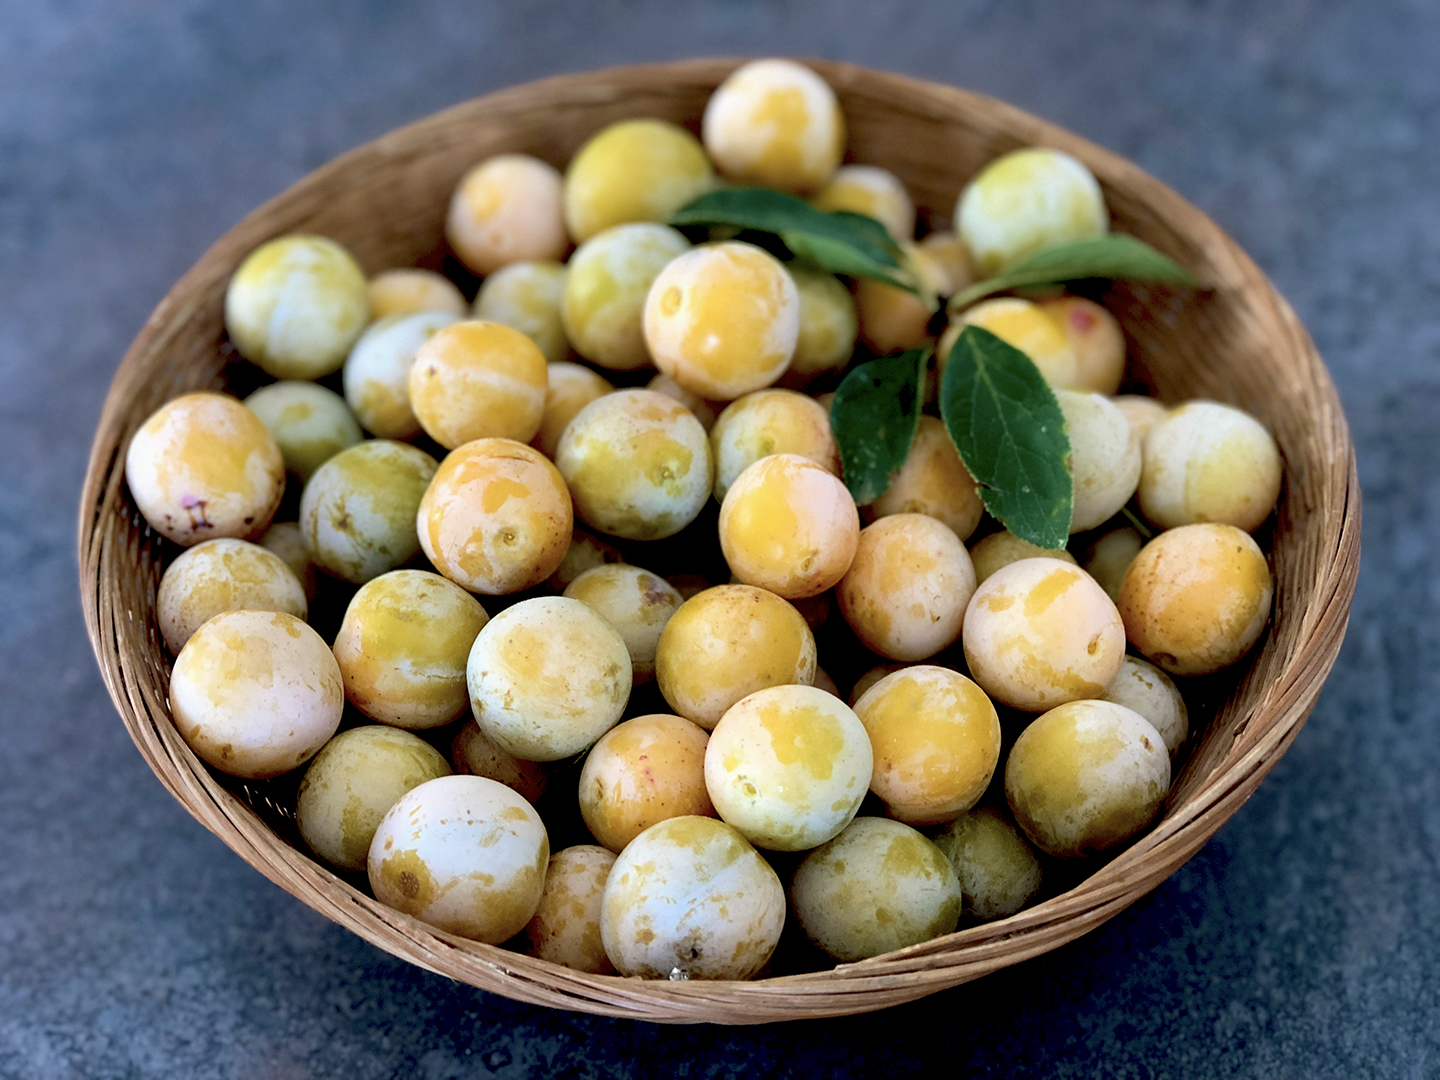 Sweet golden mirabelles